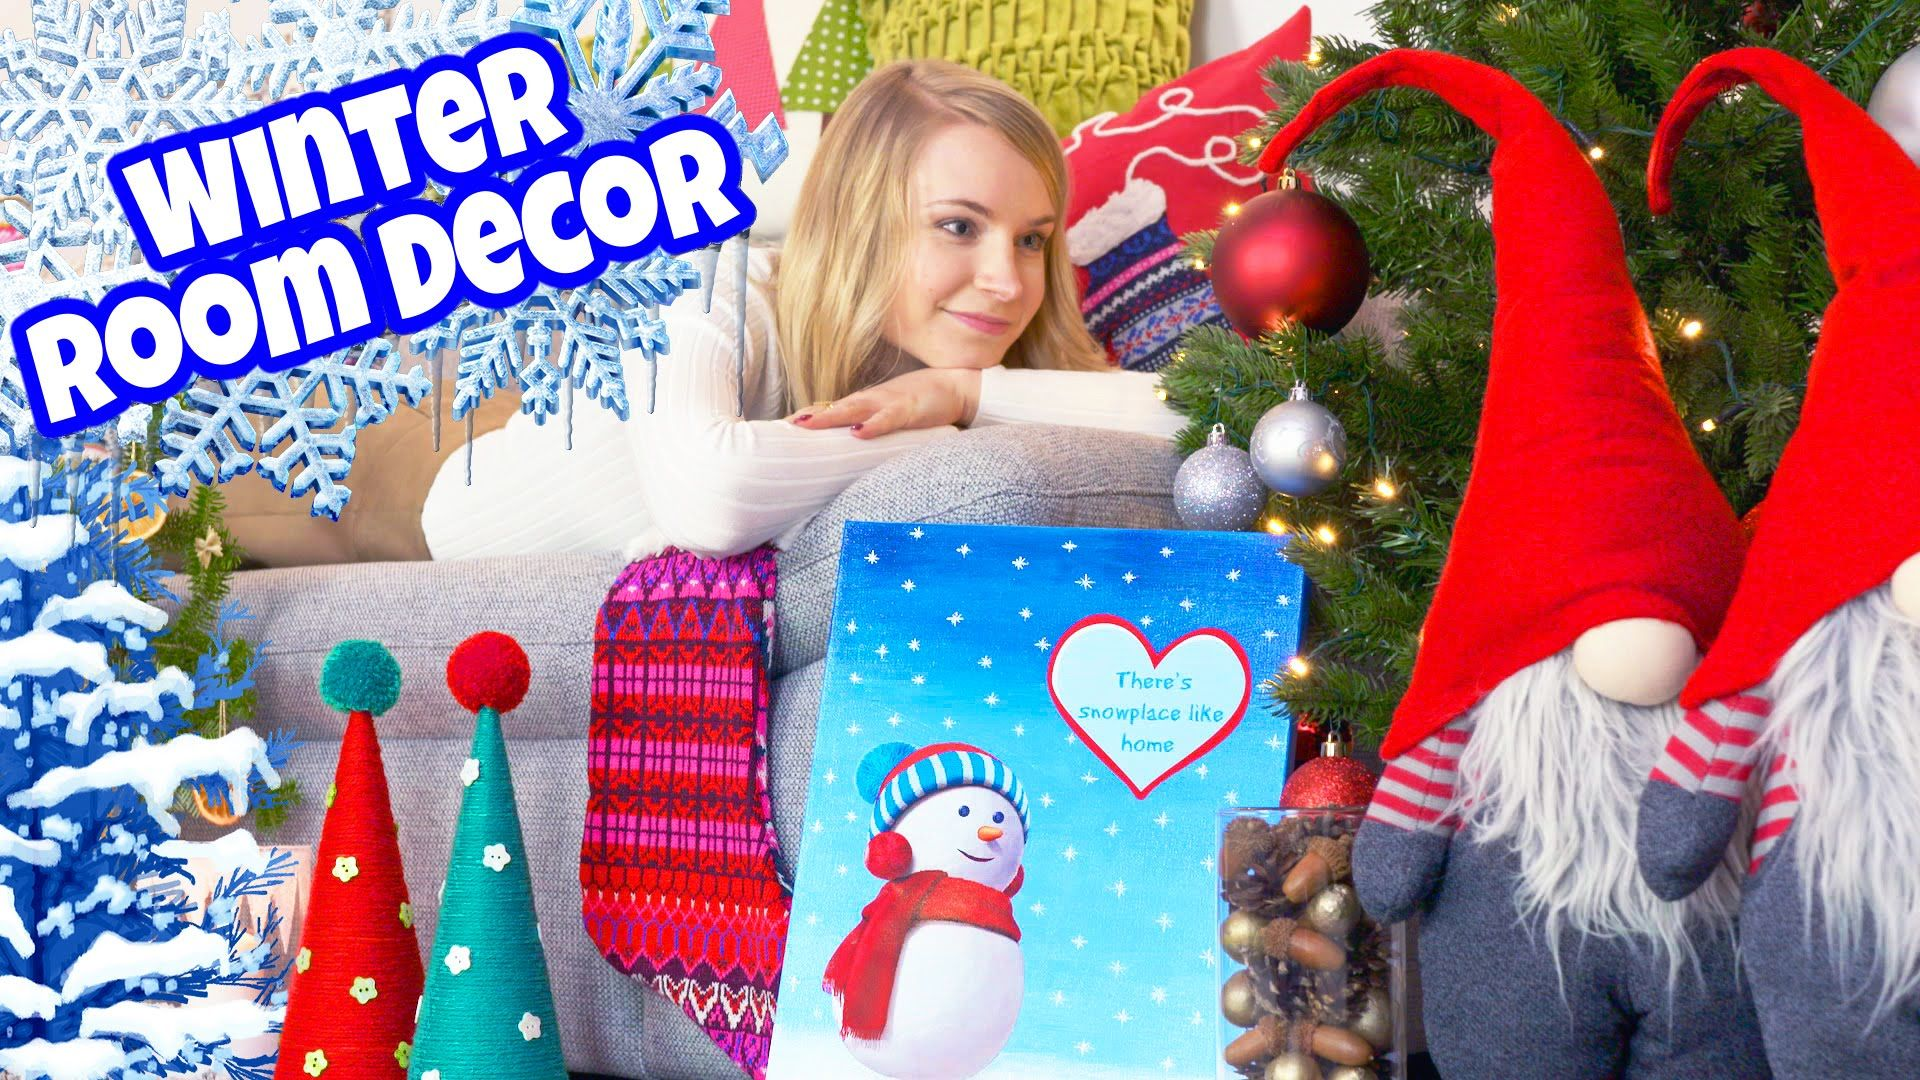 Diy Room Decor 10 Diy Projects For Winter Christmas Decorating Ideas Christmas Tree Pillow C Christmas Tree Pillow Christmas Room Decor Diy Frozen Room